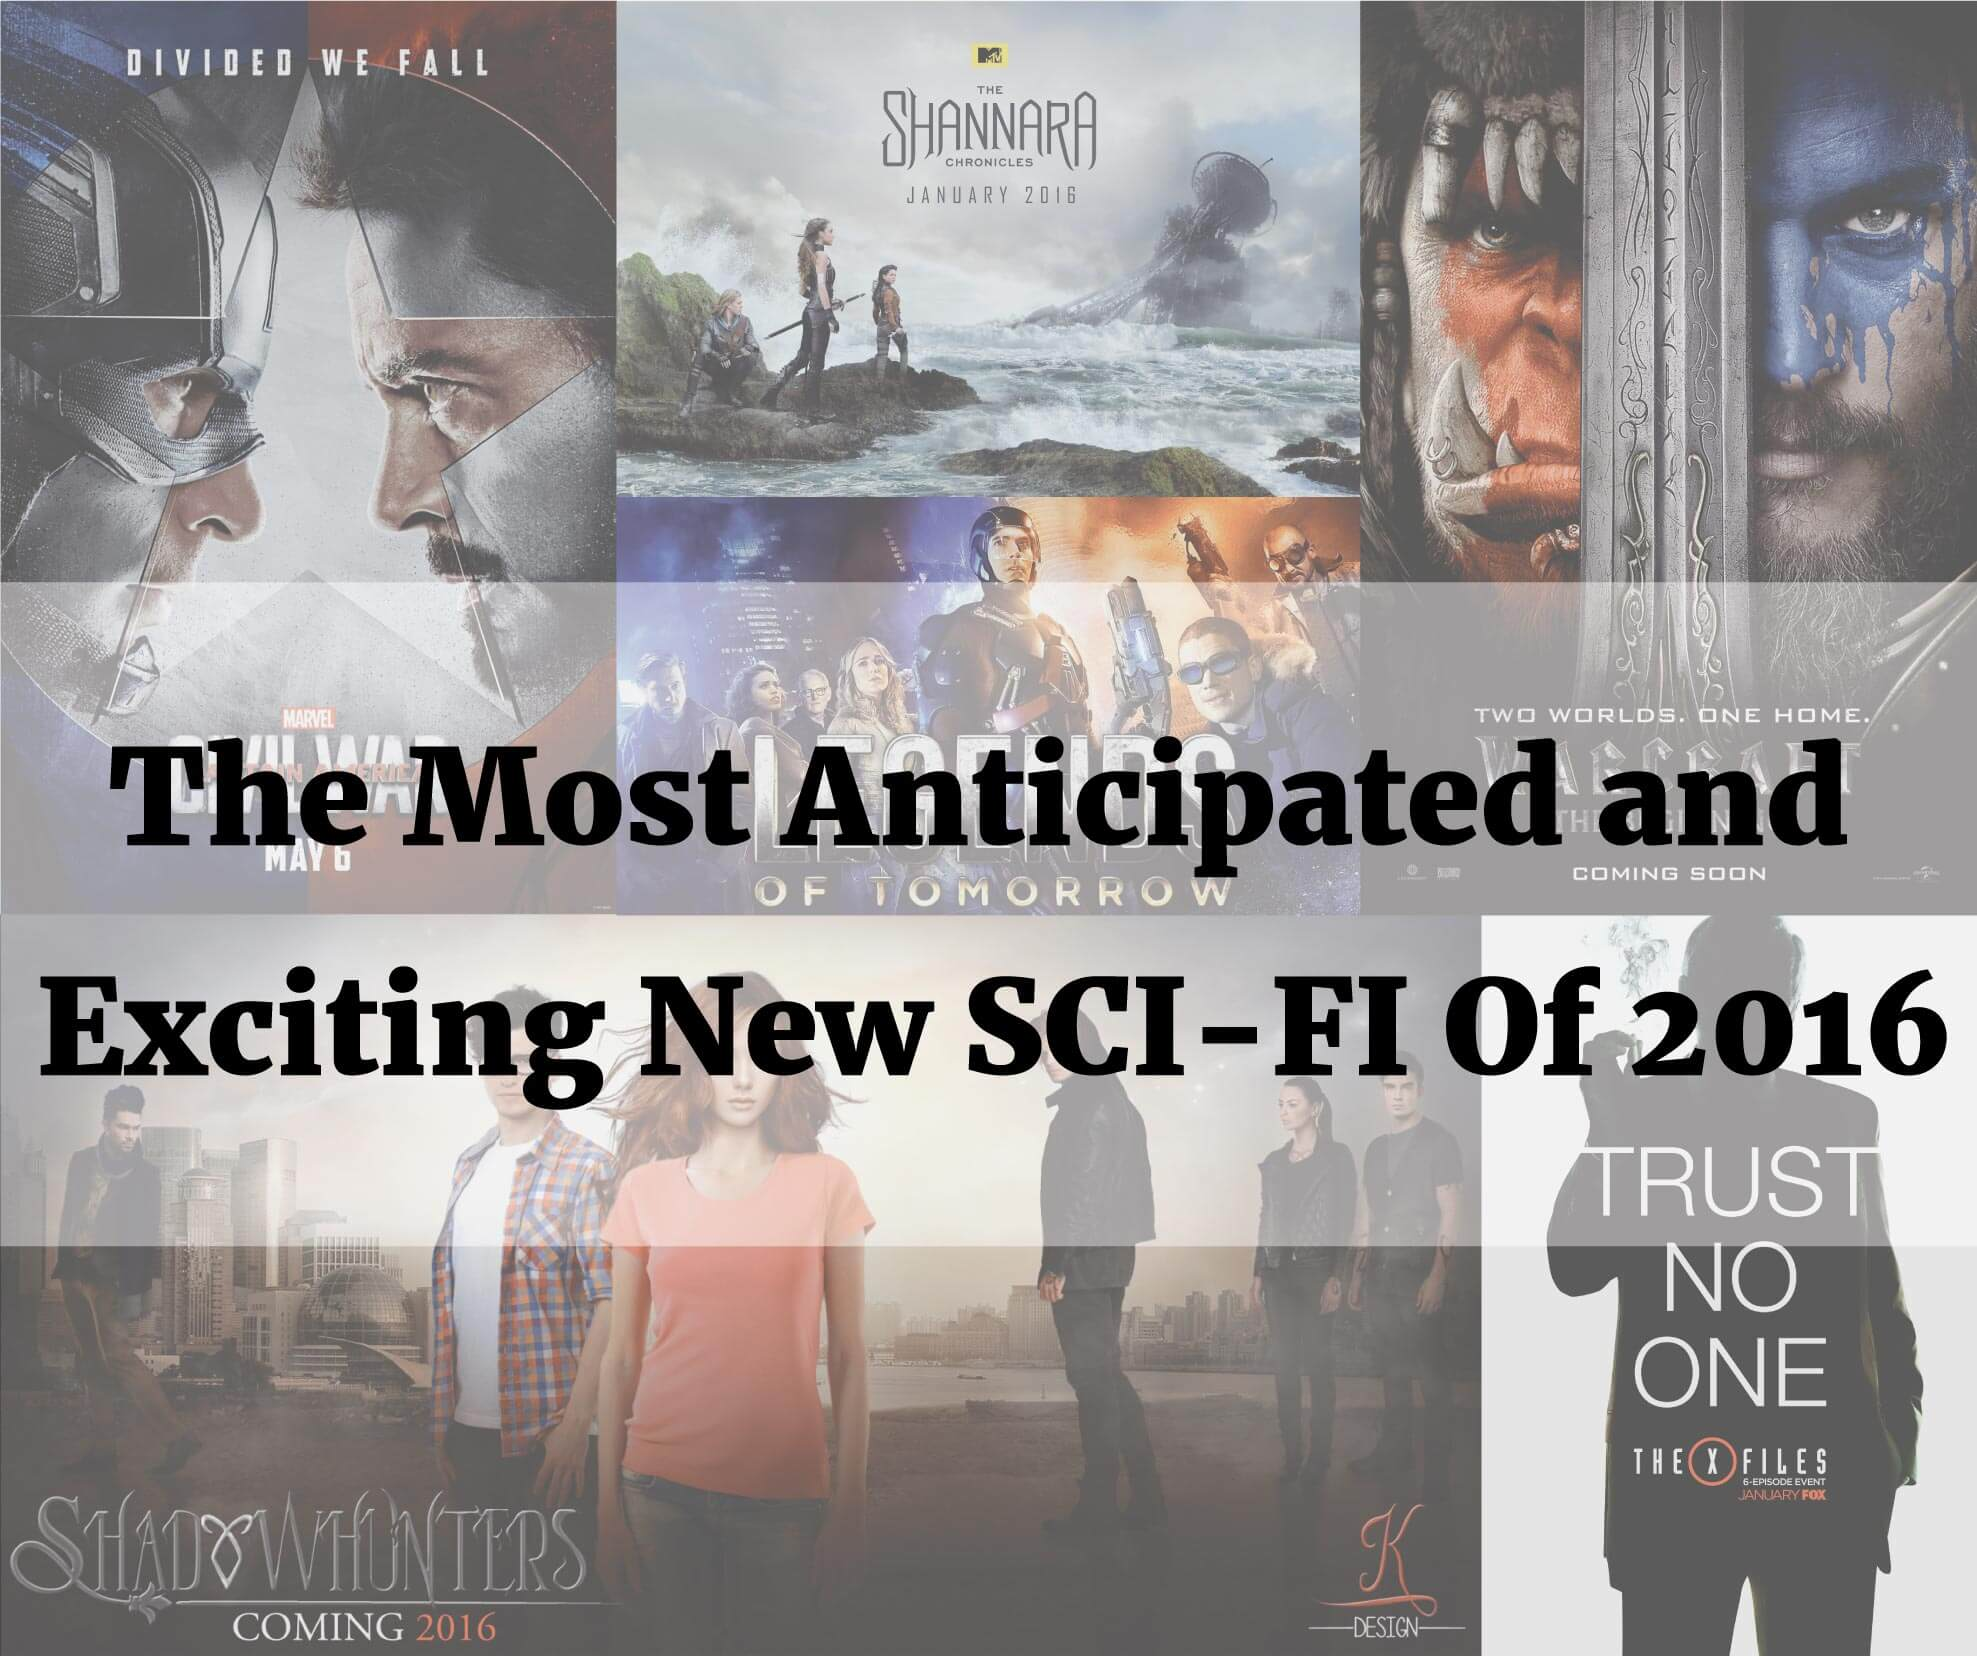 he-Most-Anticipated-and-Exciting-New-SCI-FI-Of-2016